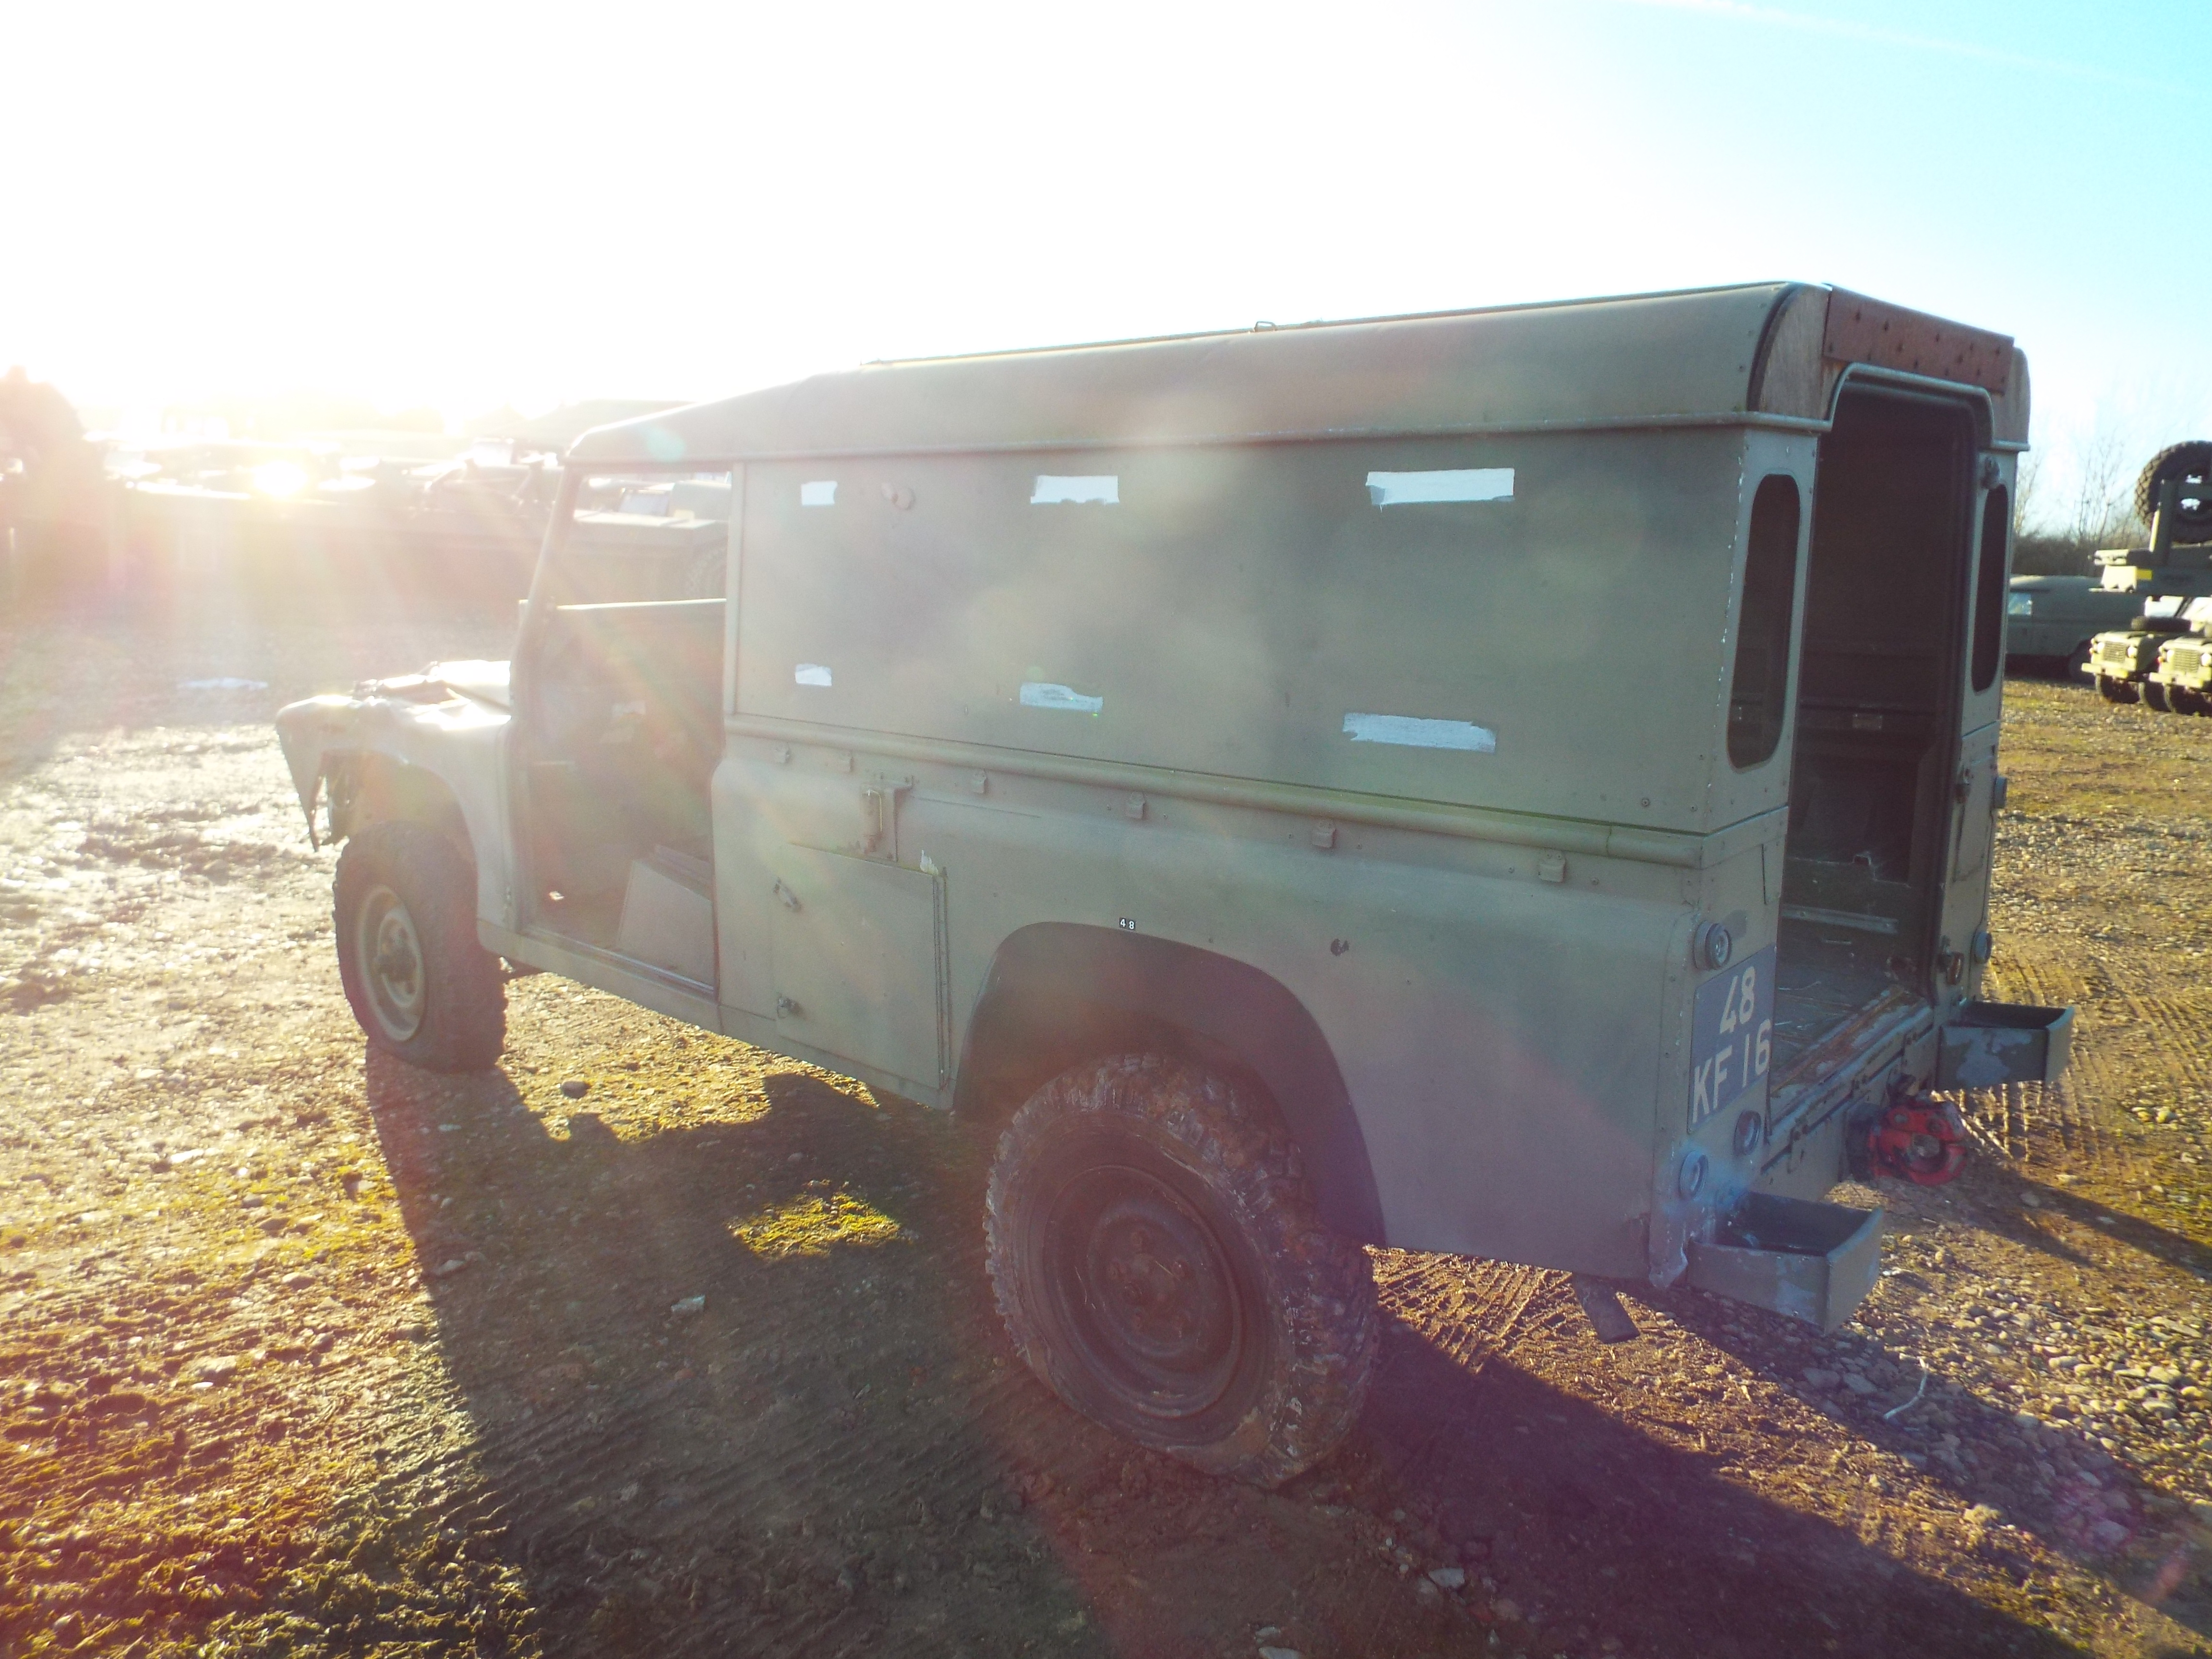 Lot 13599 - Land Rover Defender 110 Hard Top